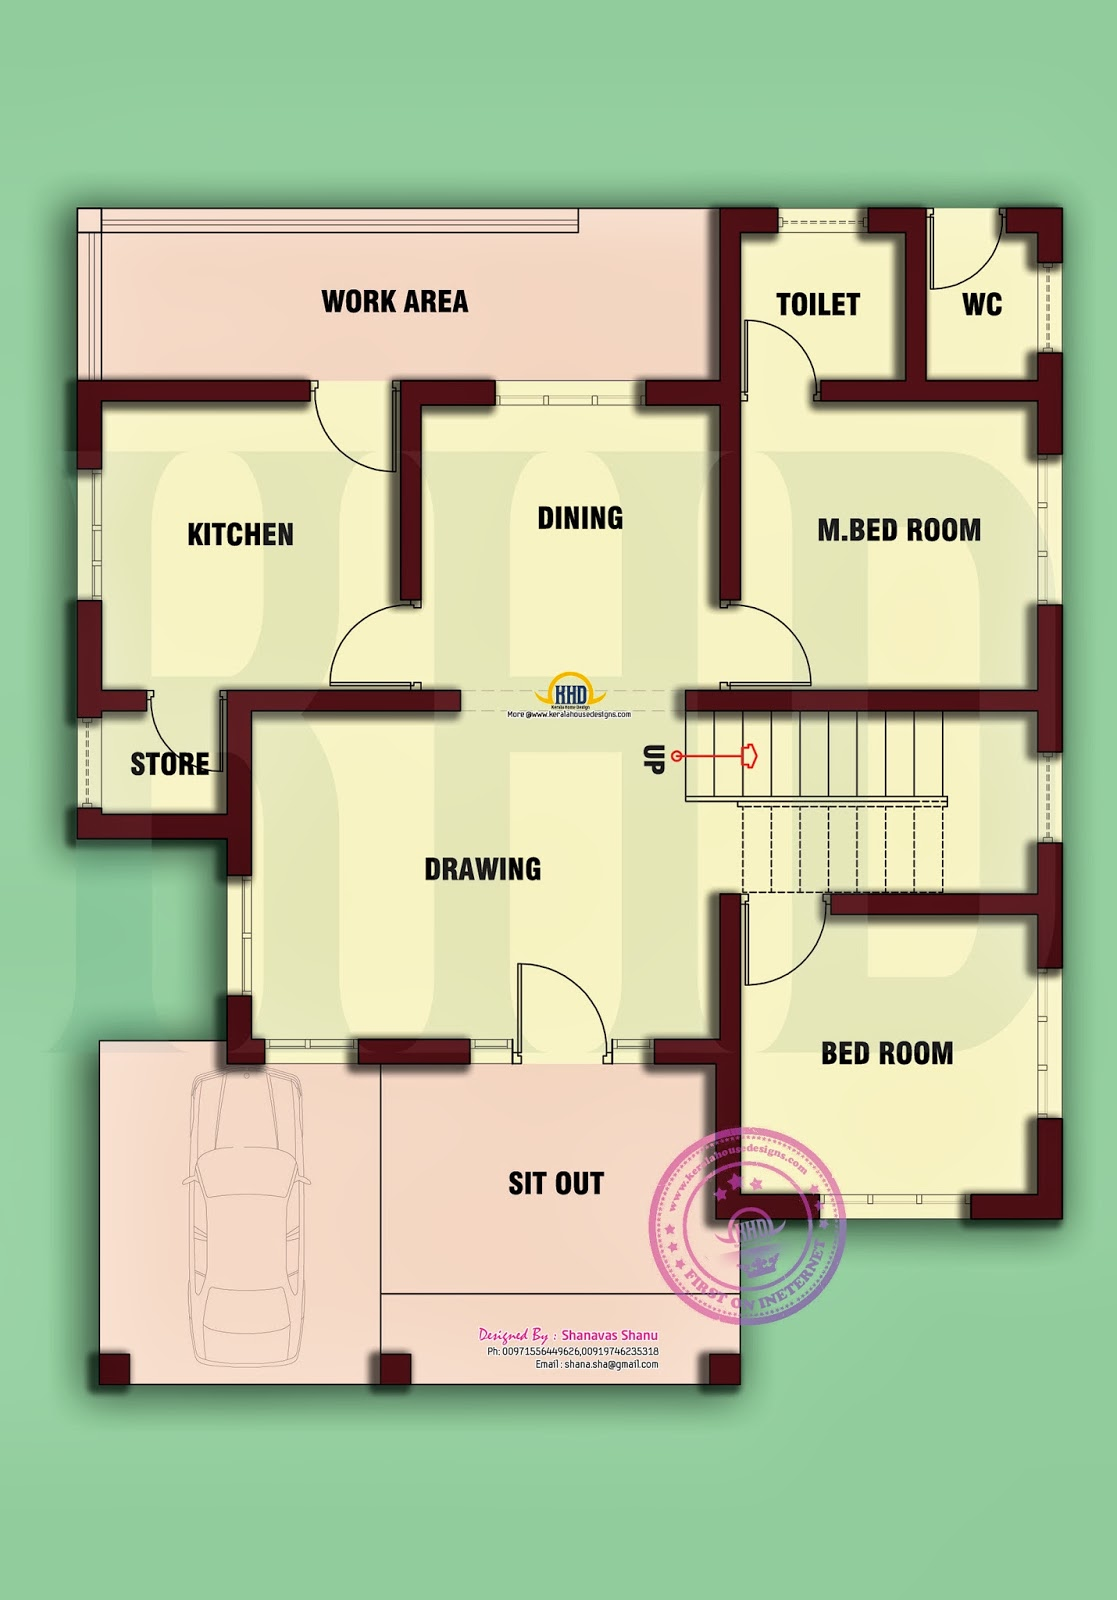 Home plan of small house kerala home design and floor plans for Looking for a 4 bedroom